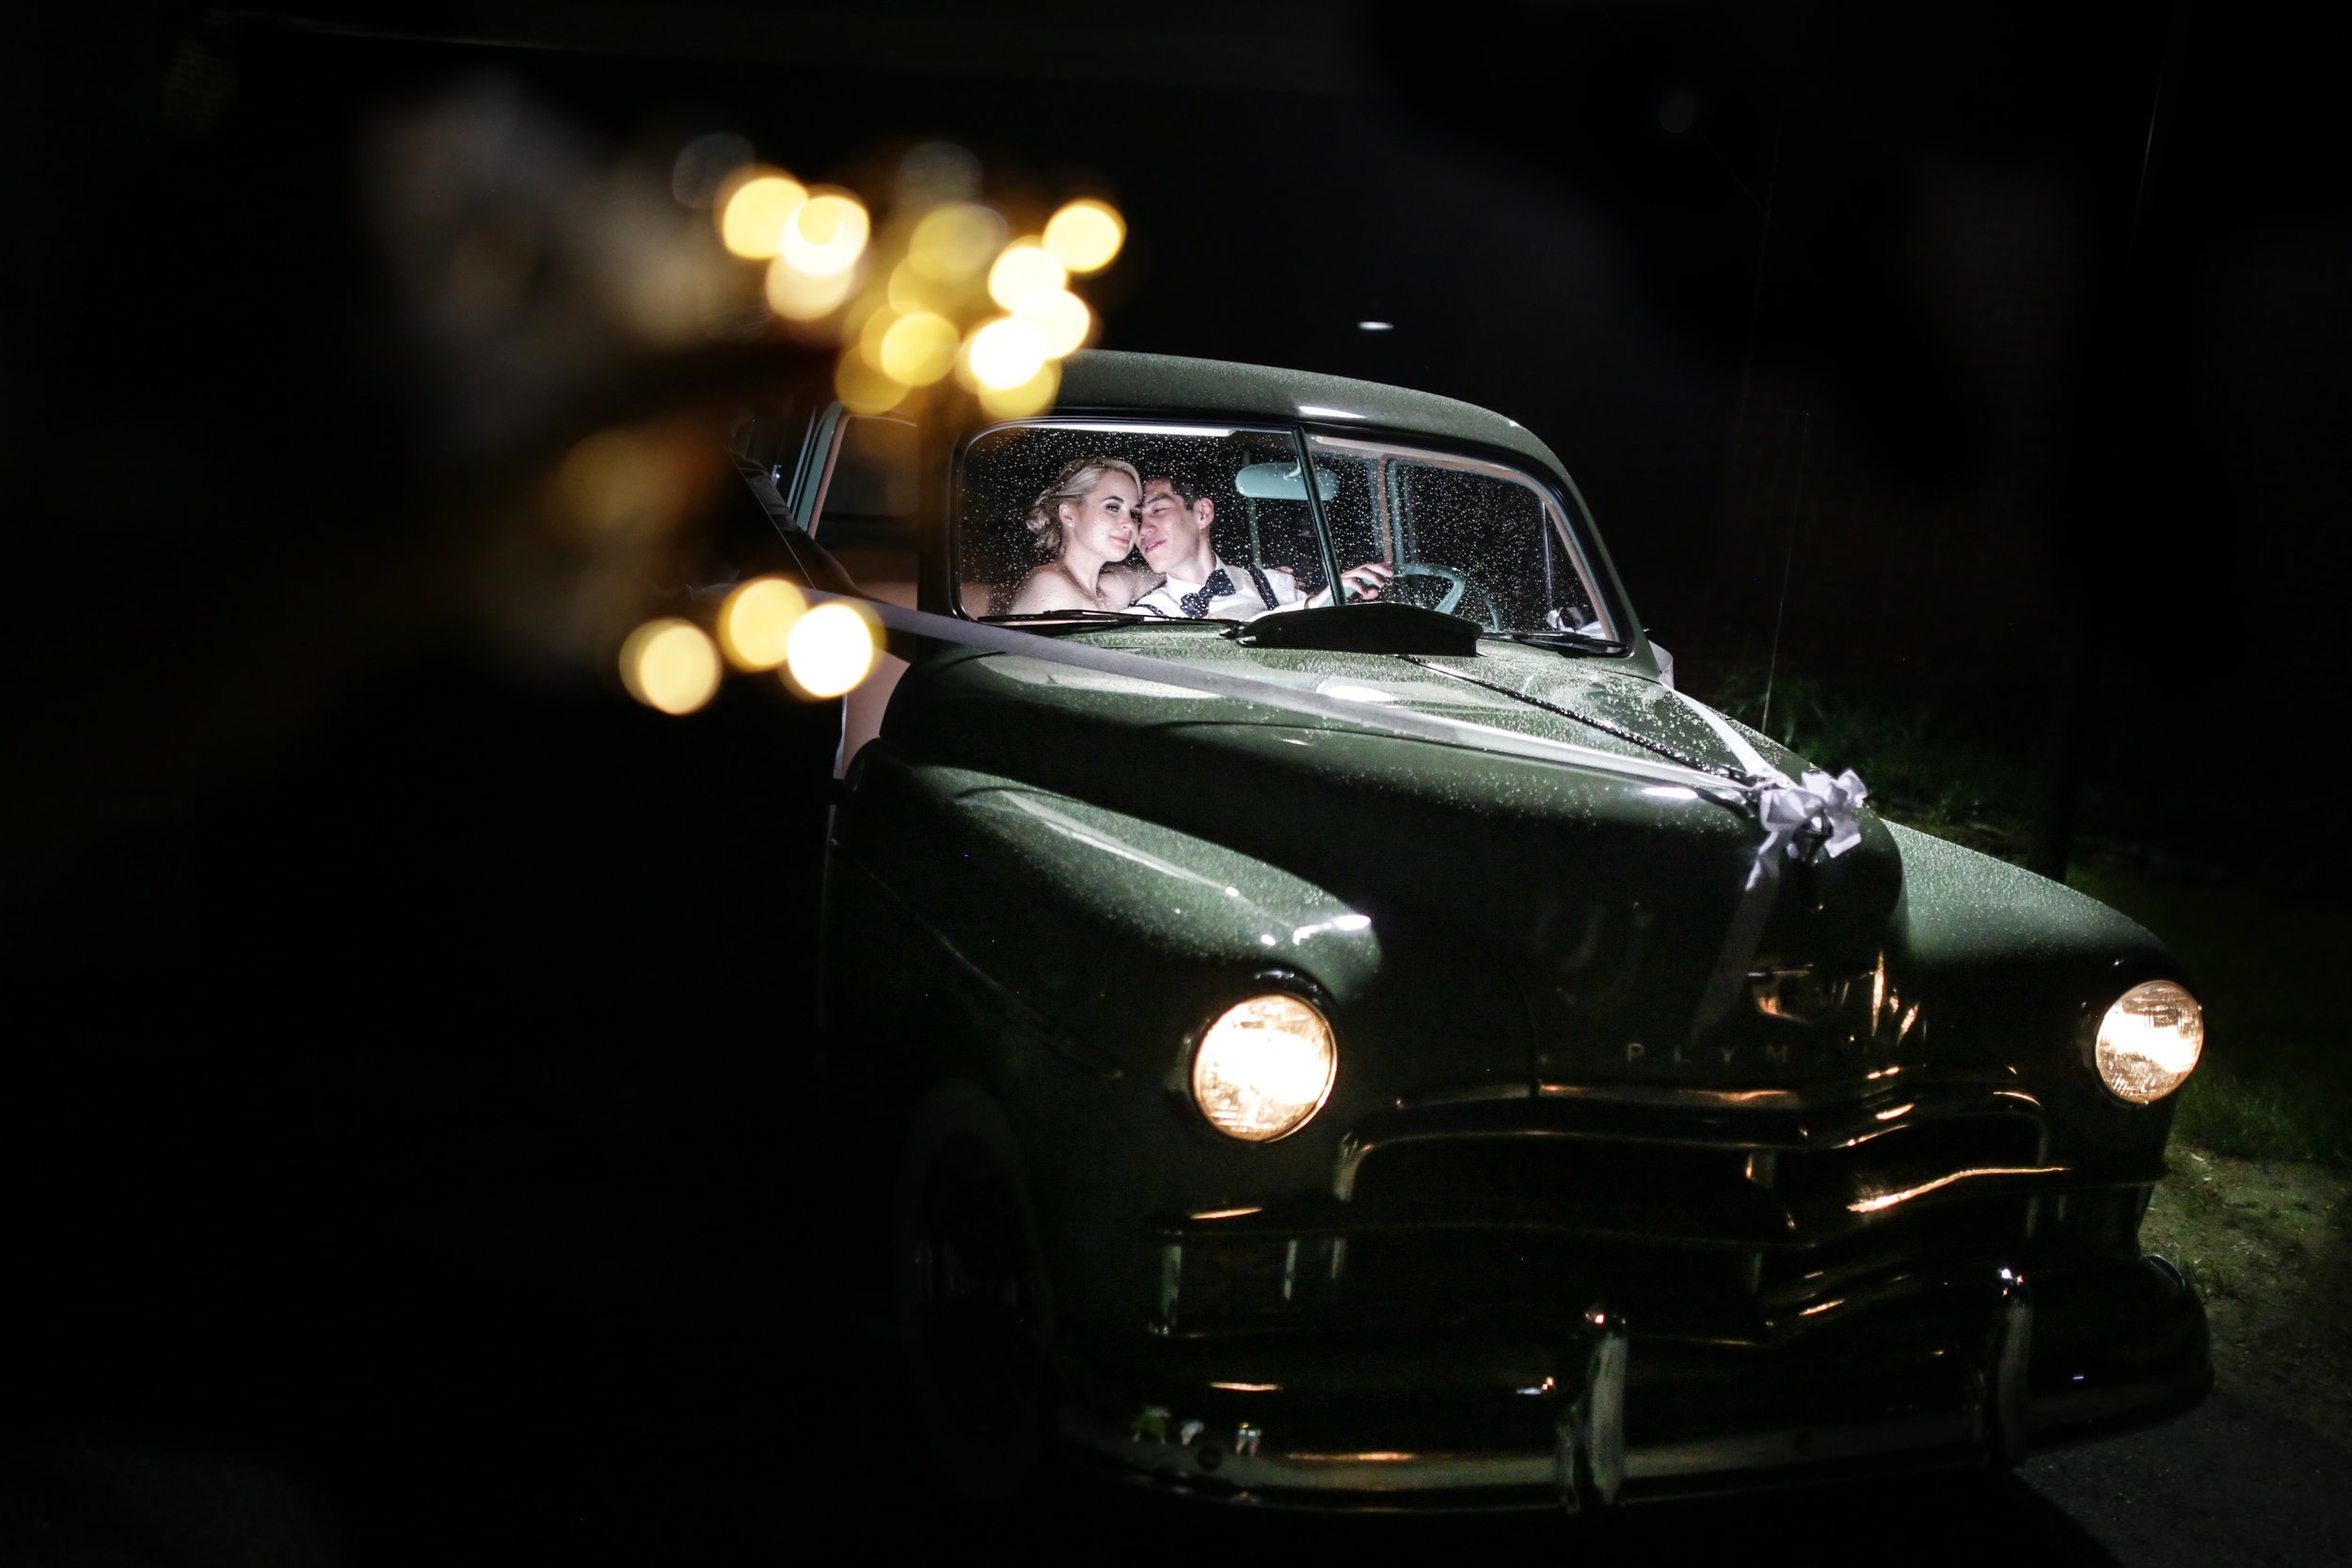 Smithville mansion modern elegant wedding  in vintage car.jpg